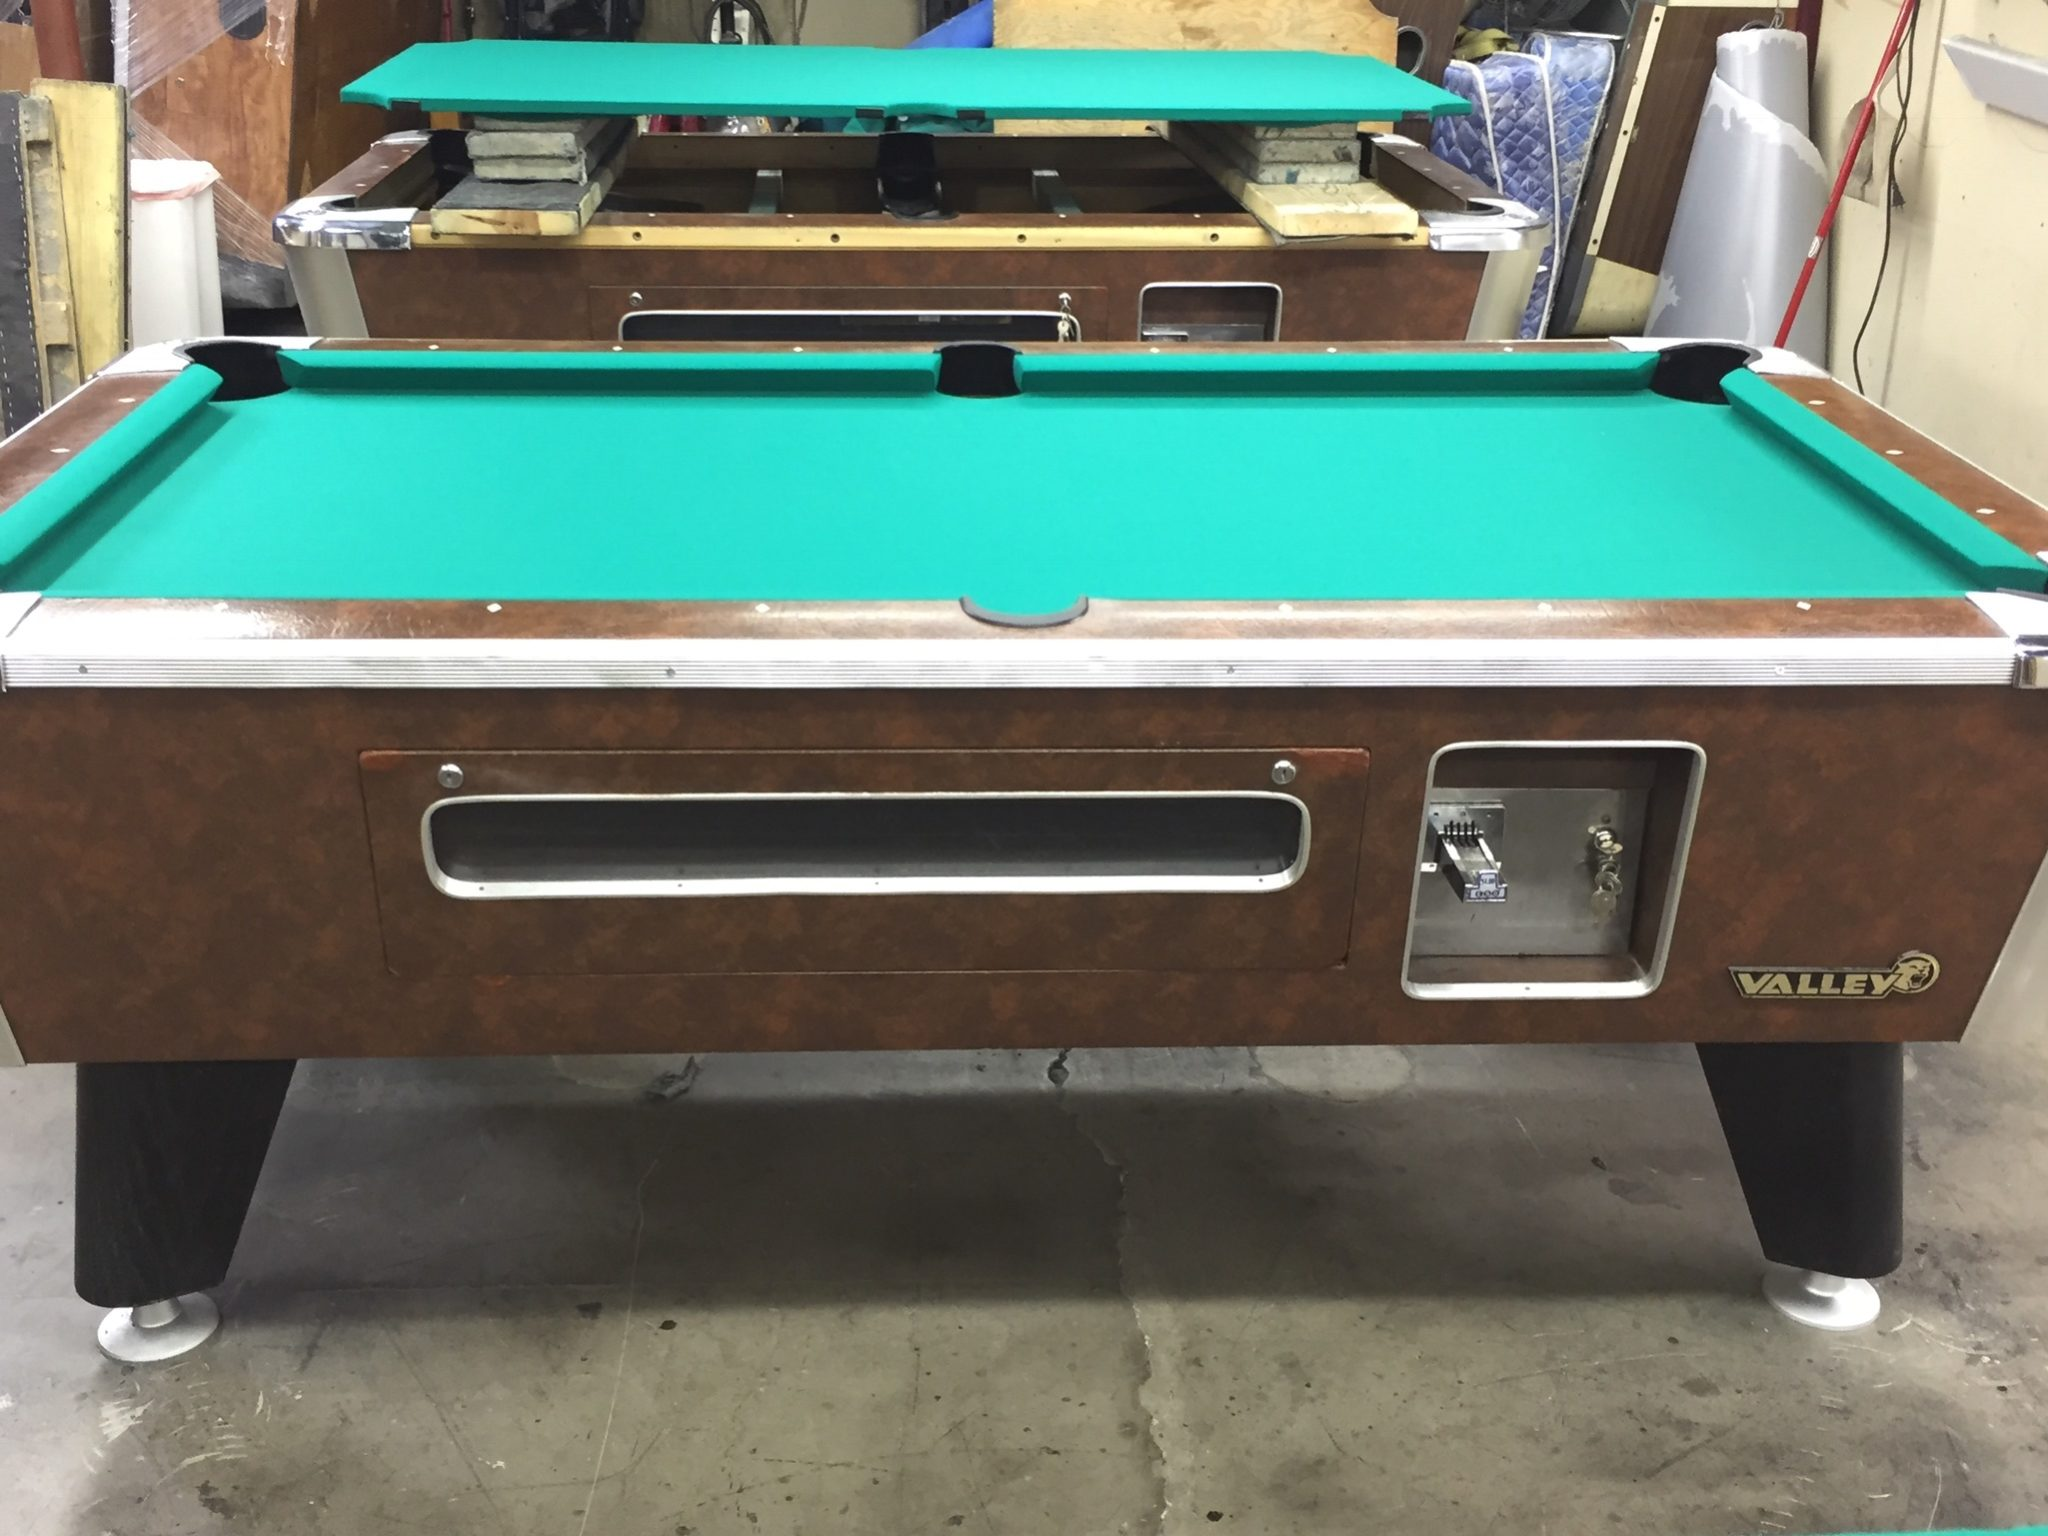 Incredible Coin Operated Pool Tables Prices South Africa Storj Ico Home Interior And Landscaping Ologienasavecom